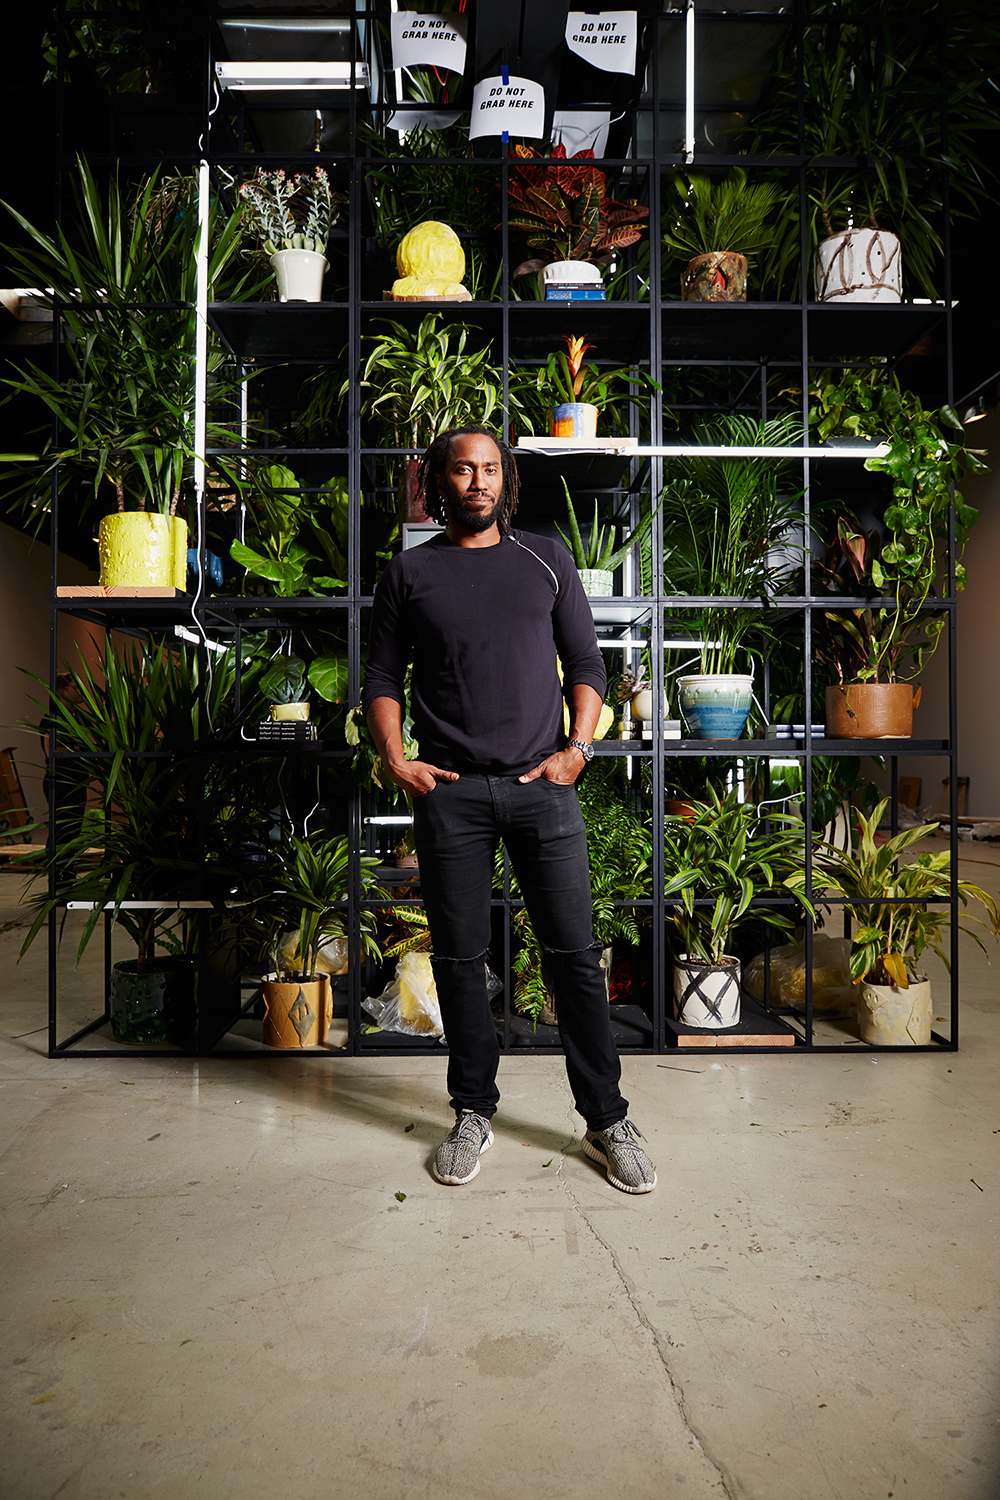 Rashid Johnson photographed at Hauser & Wirth Gallery, 511 West 18th St., New York, New York, August 25th, 2016.